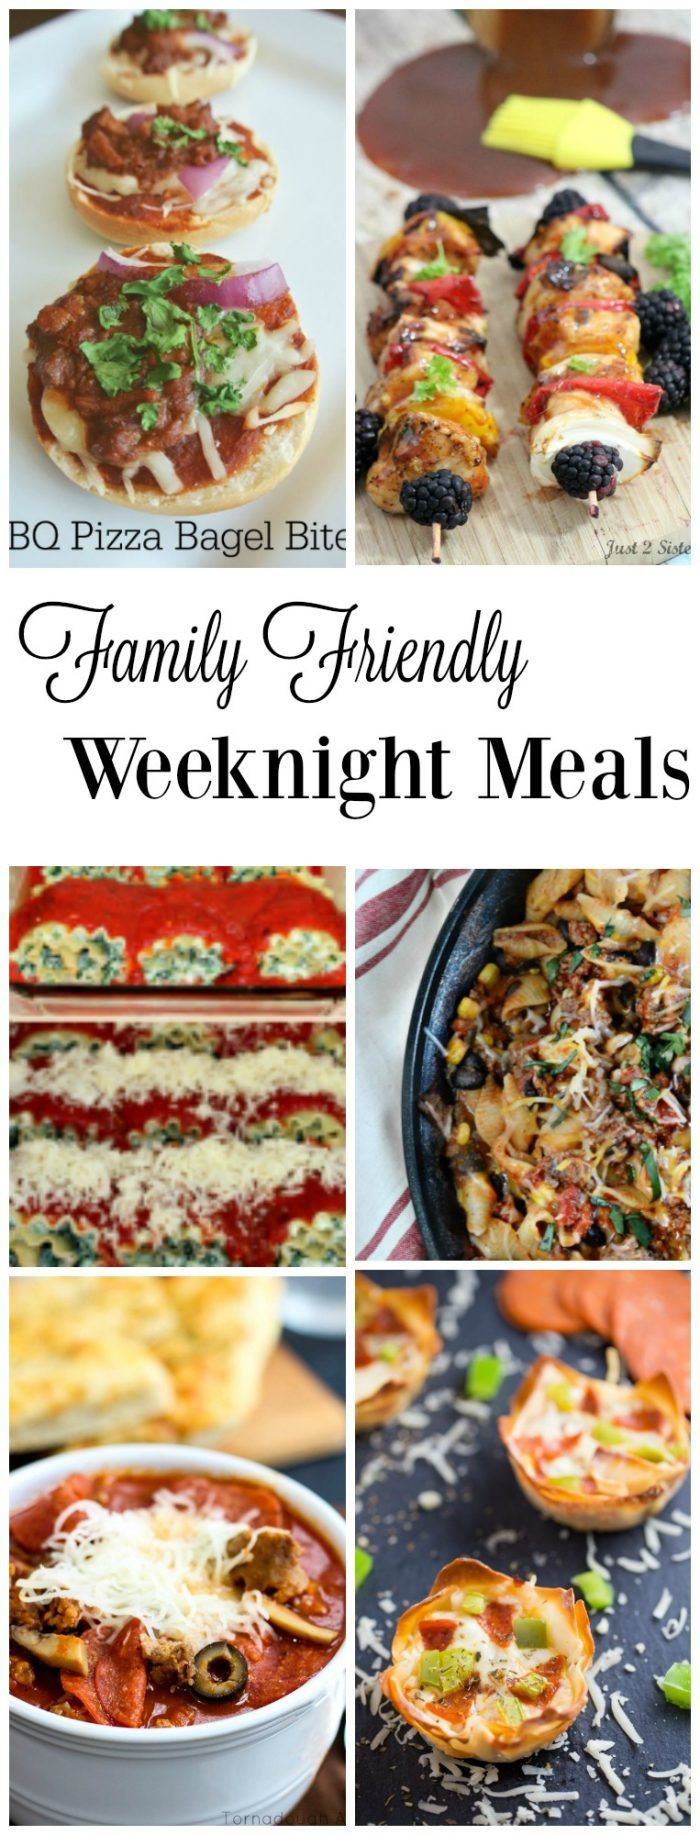 Easy Summer Weeknight Dinners  Family Friendly Weeknight Meals Summer Meals